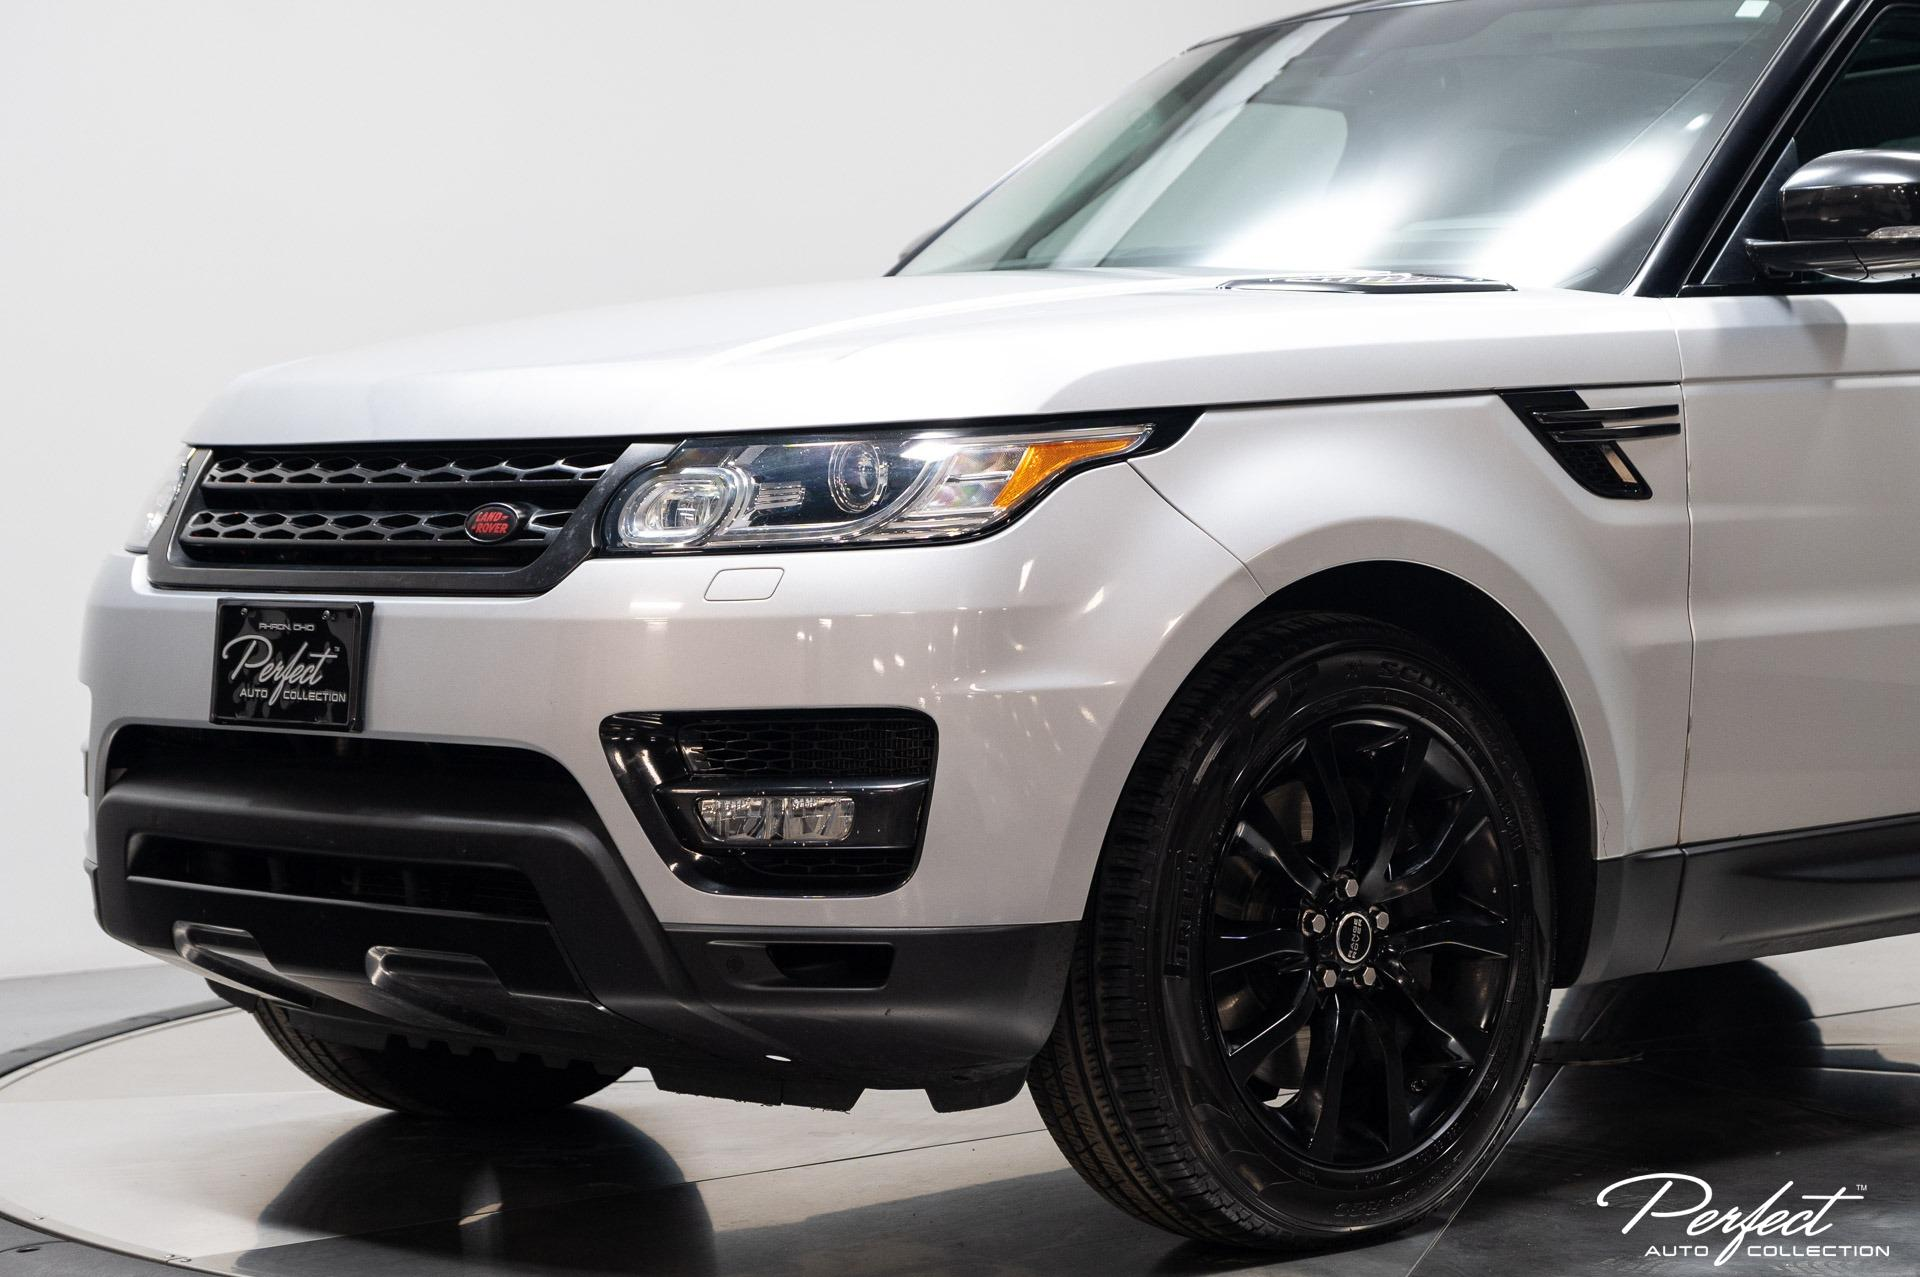 Used 2014 Land Rover Range Rover Sport Supercharged for sale Sold at Perfect Auto Collection in Akron OH 44310 2